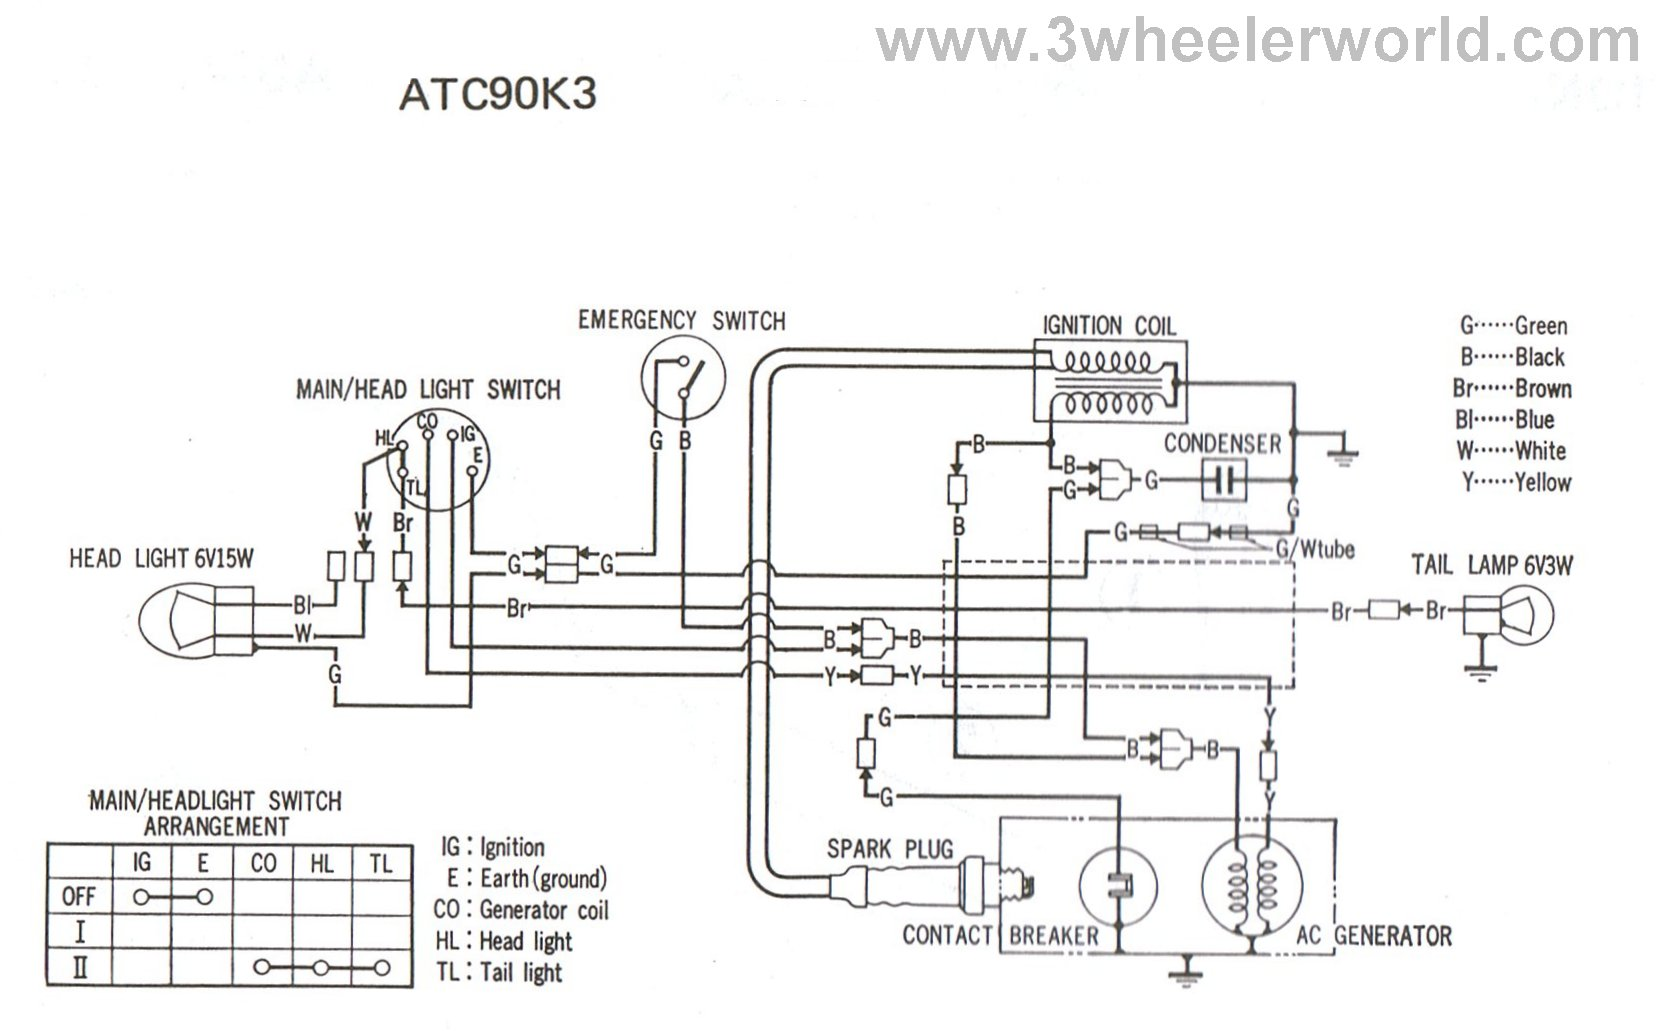 1995 polaris scrambler 400 4x4 wiring diagram - wiring diagram polaris scrambler 500 wiring diagram